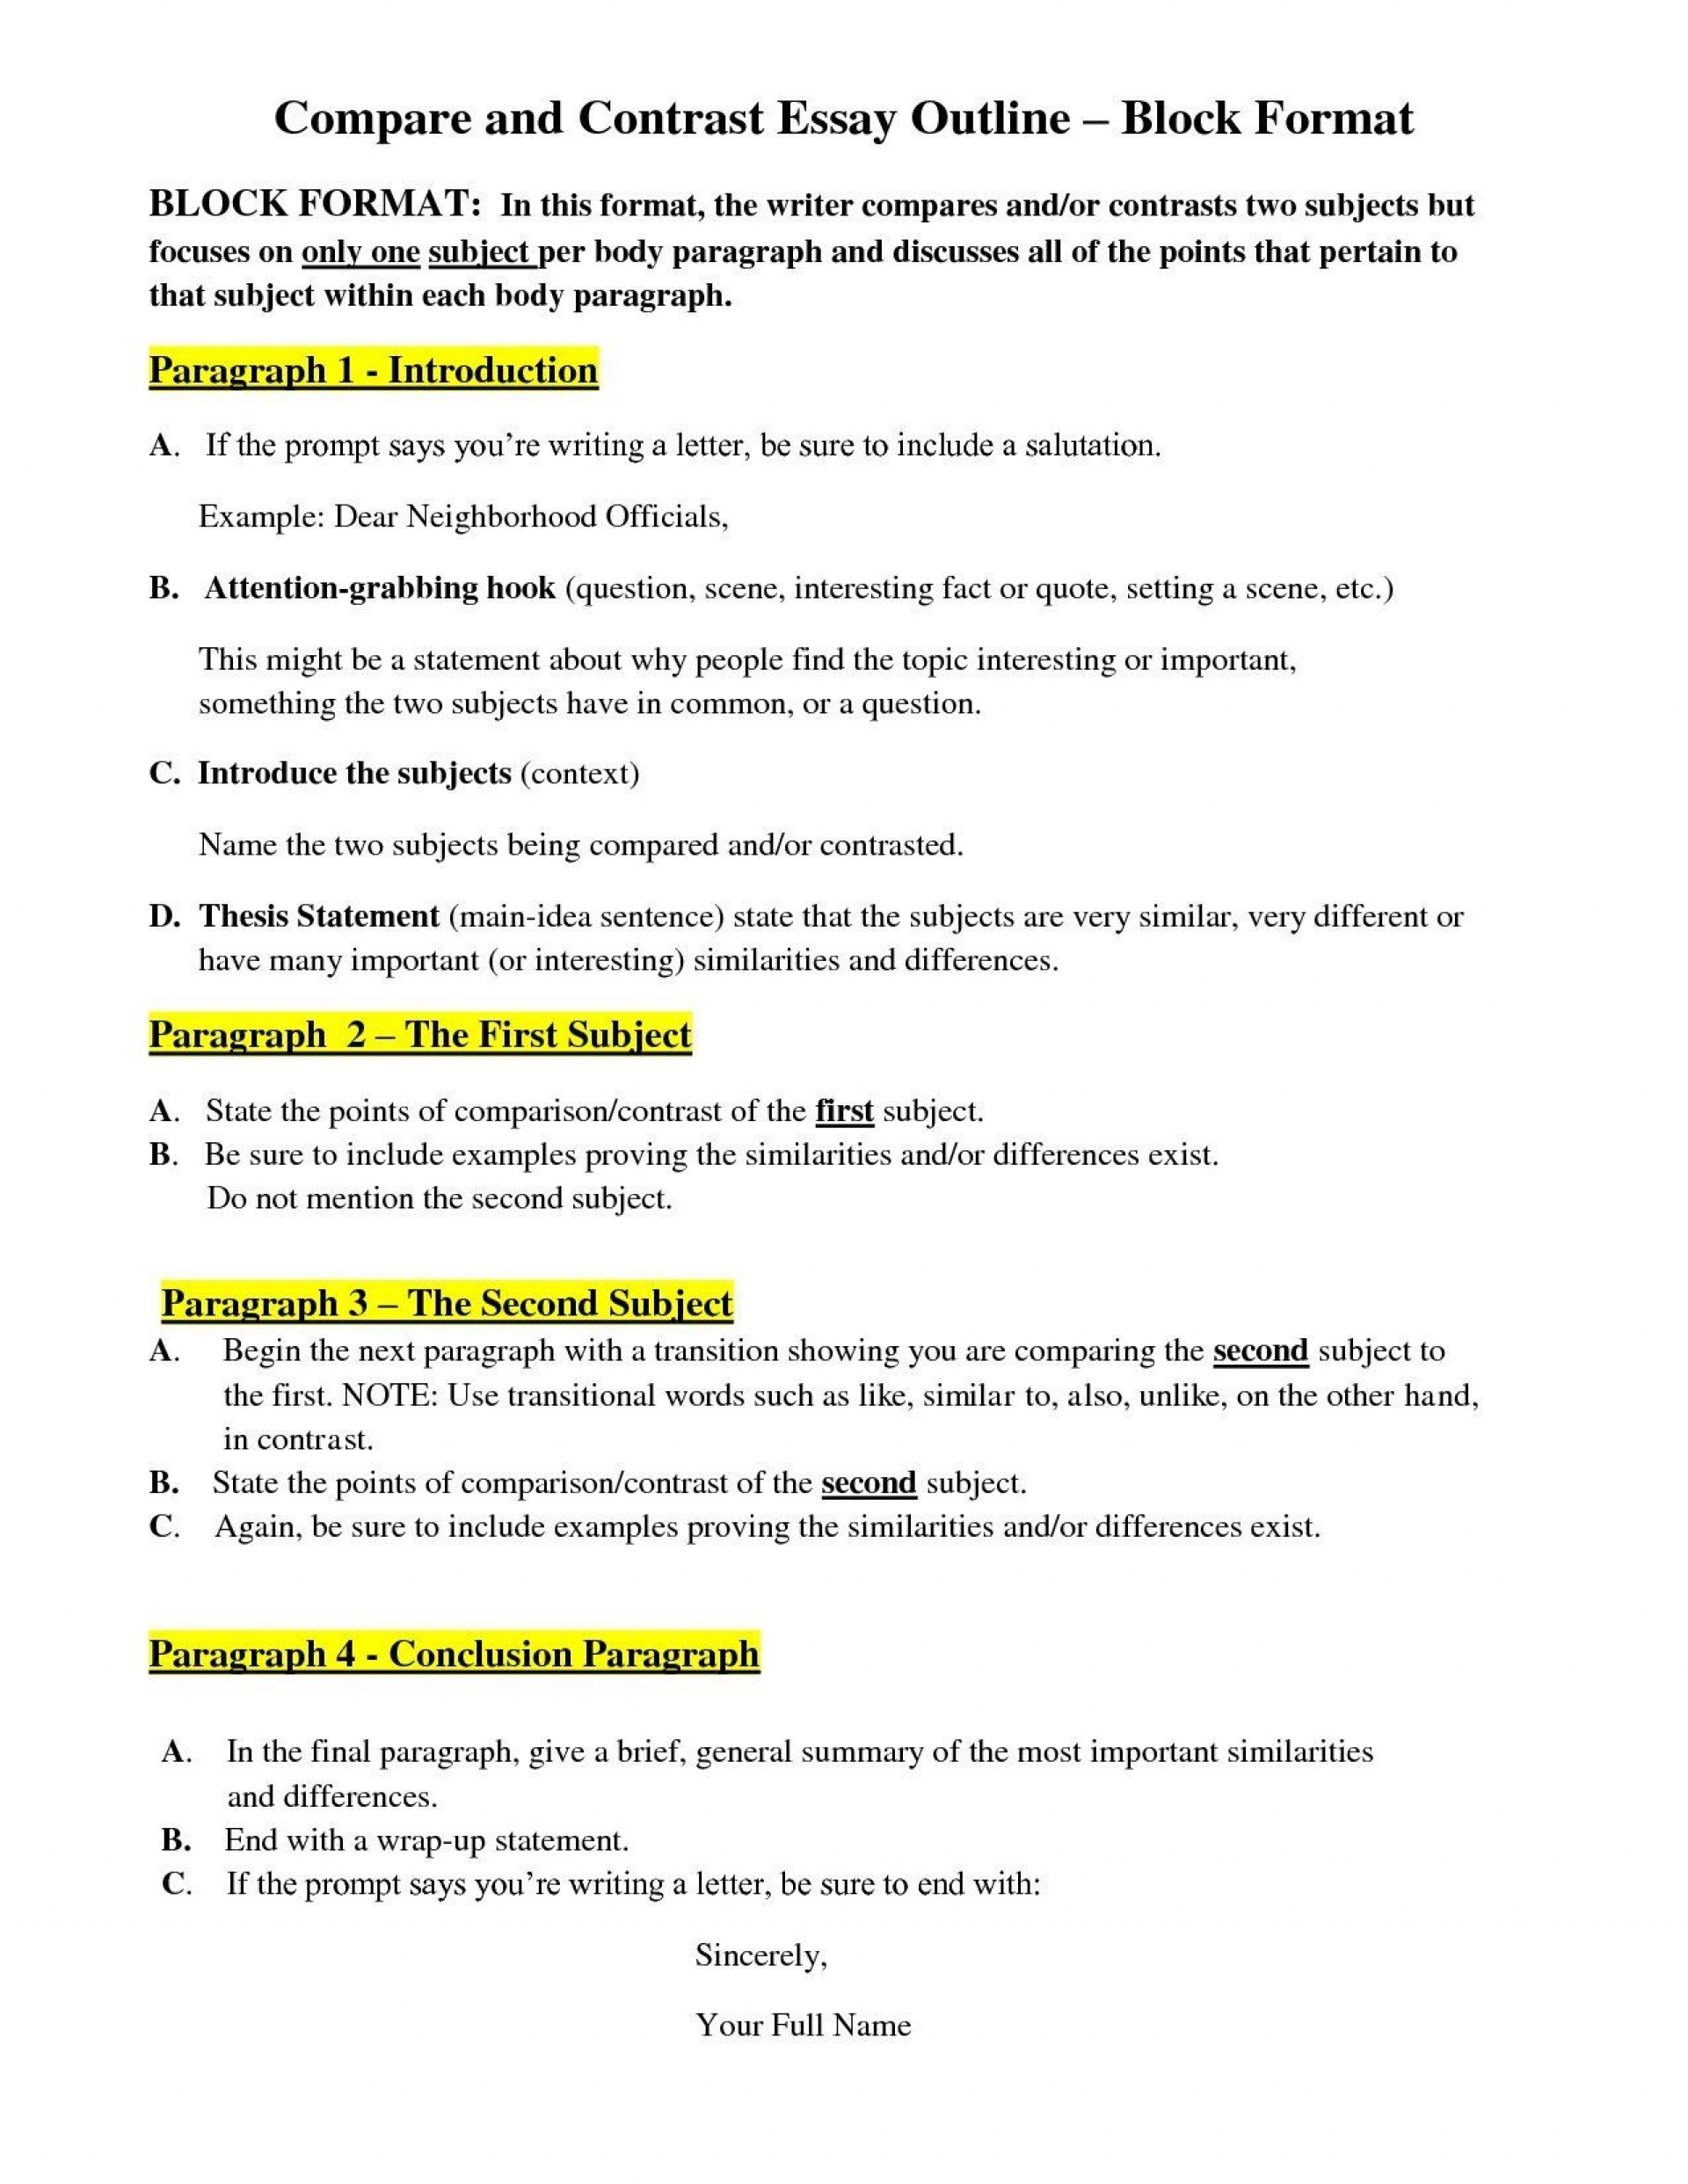 007 Compare And Contrast Essay Frightening Sample 4th Grade Introduction Paragraph Ideas 1920